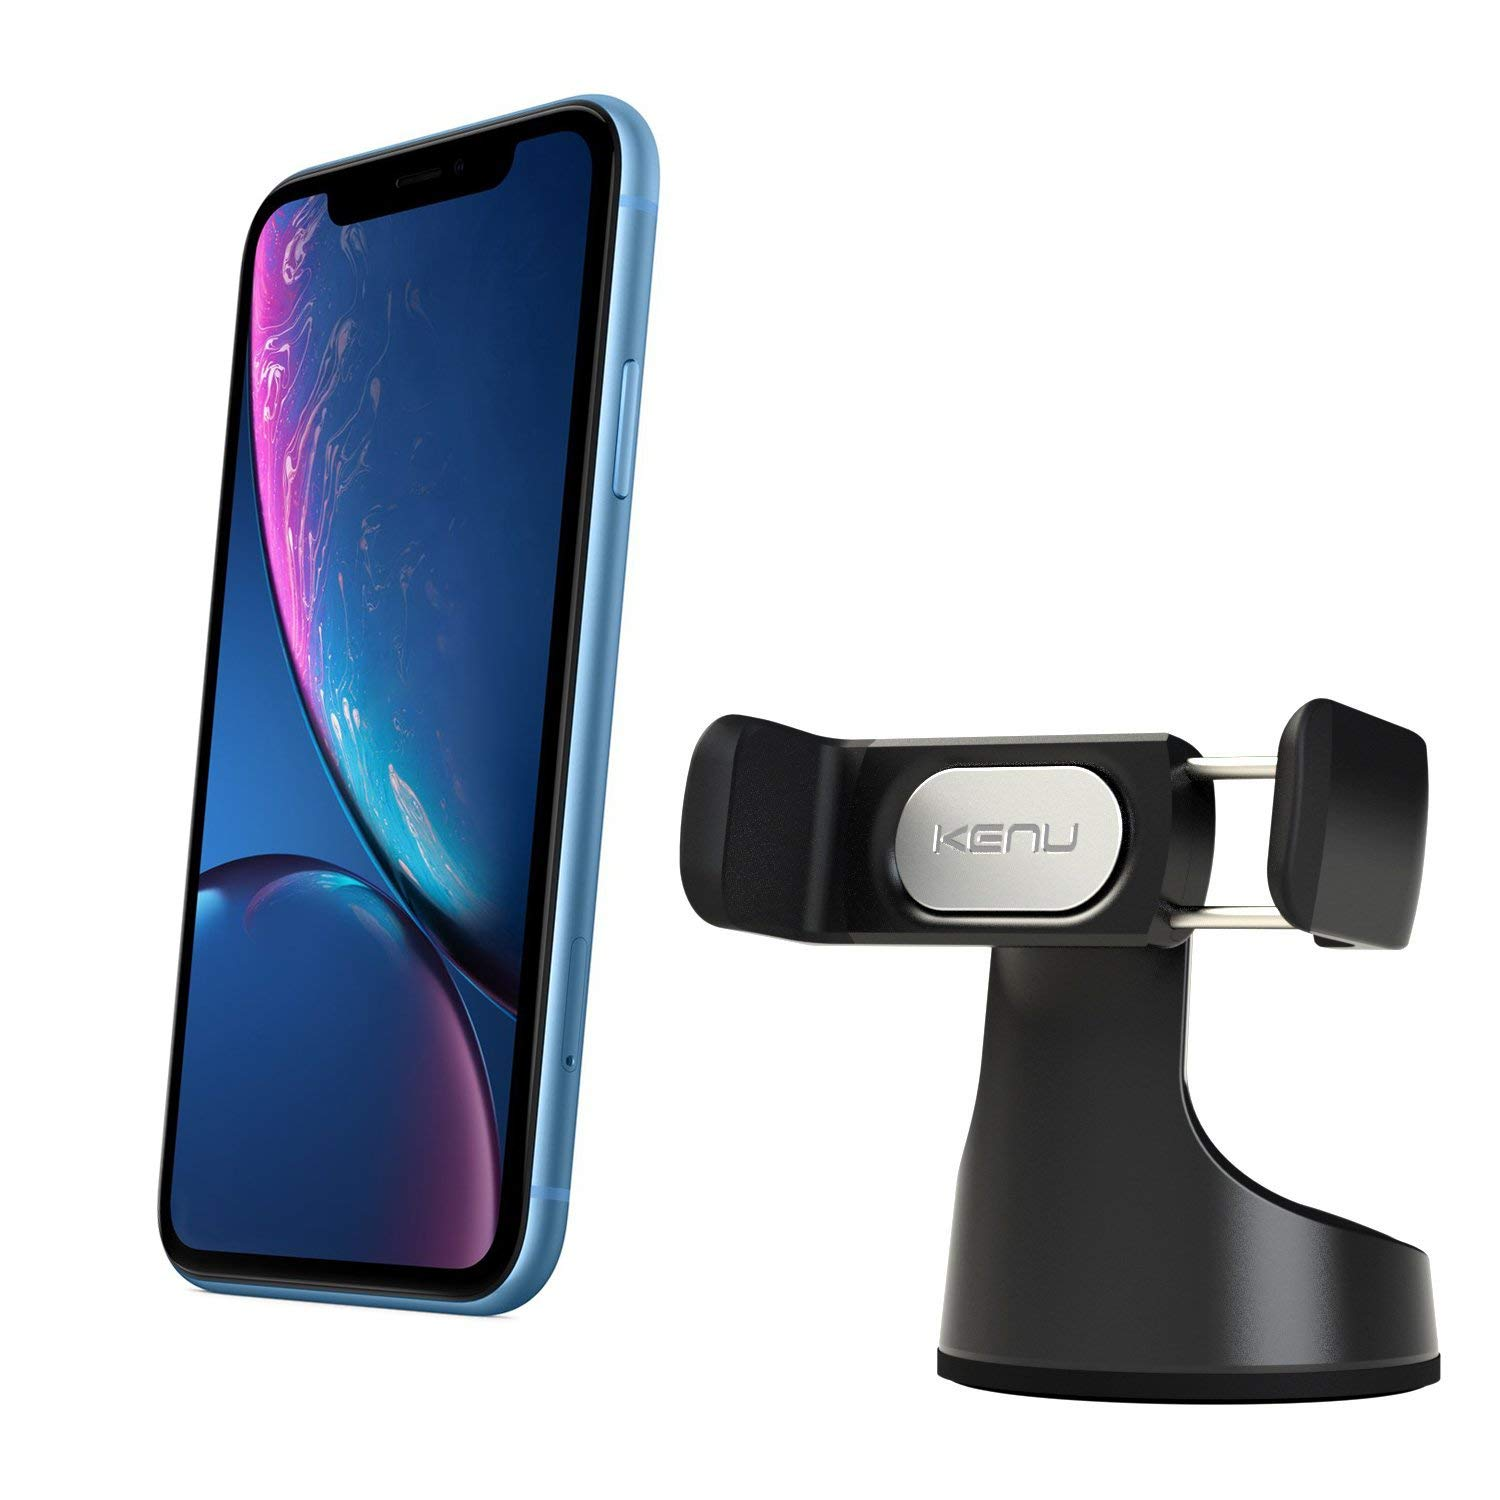 Kenu Airbase Pro | Premium Car Phone Mount | Android Car Mount + iPhone Car Holder, Works with iPhone Xs Max/Xs/X, iPhone 8 Plus/8, iPhone 7 Plus/7 Car Accessories, Samsung Phone Stand | Black by Kenu